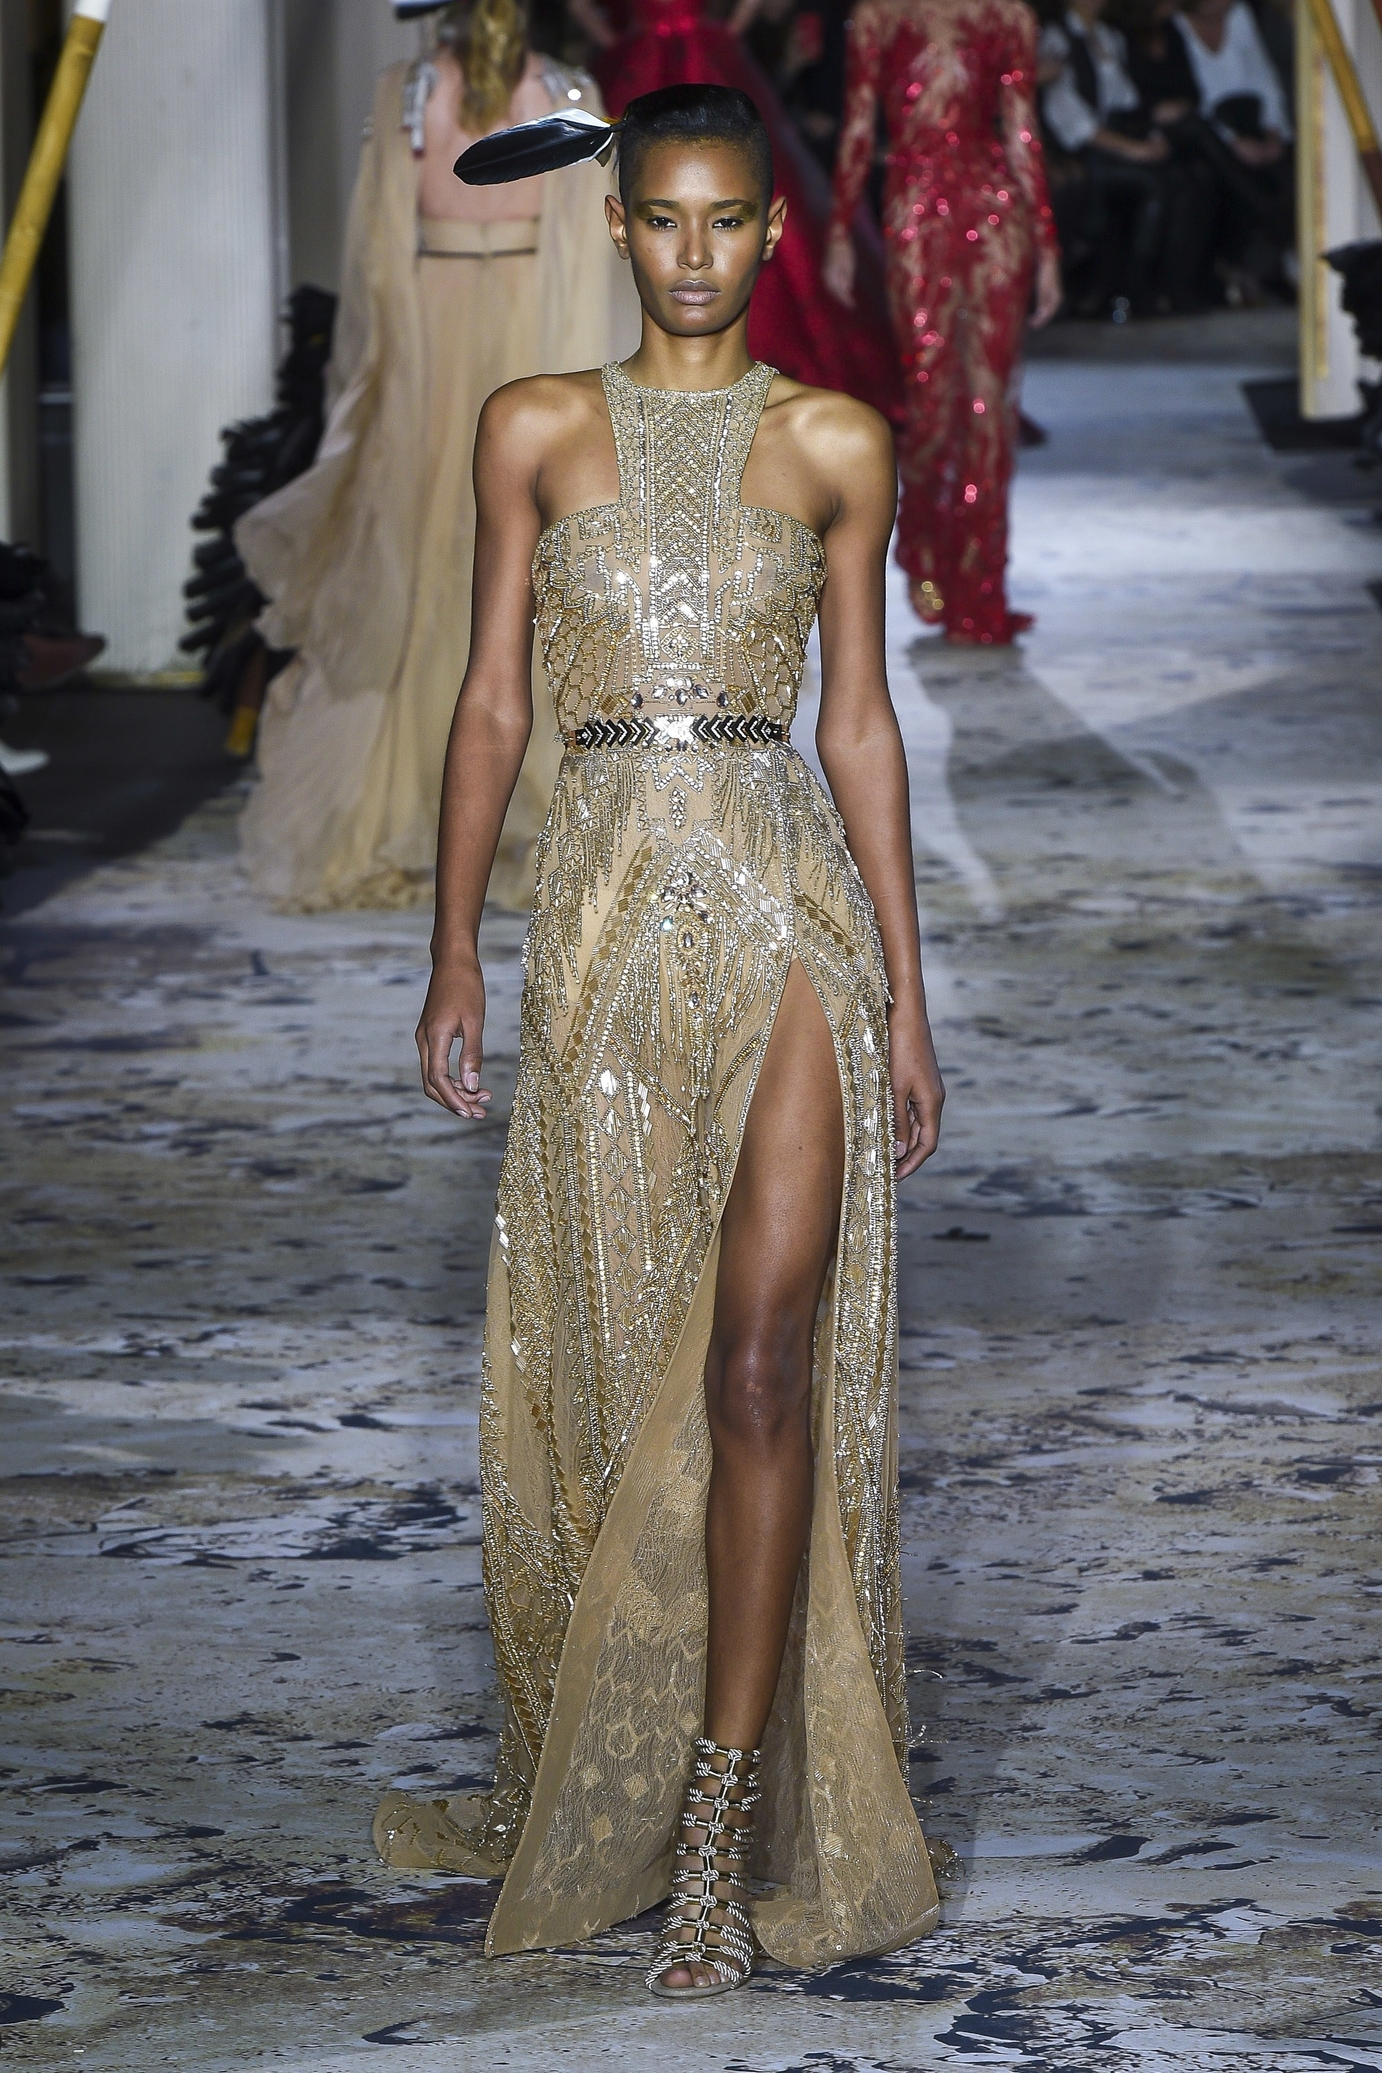 Forum on this topic: 10 Best Tracks from Haute Couture FashionWeek, 10-best-tracks-from-haute-couture-fashionweek/